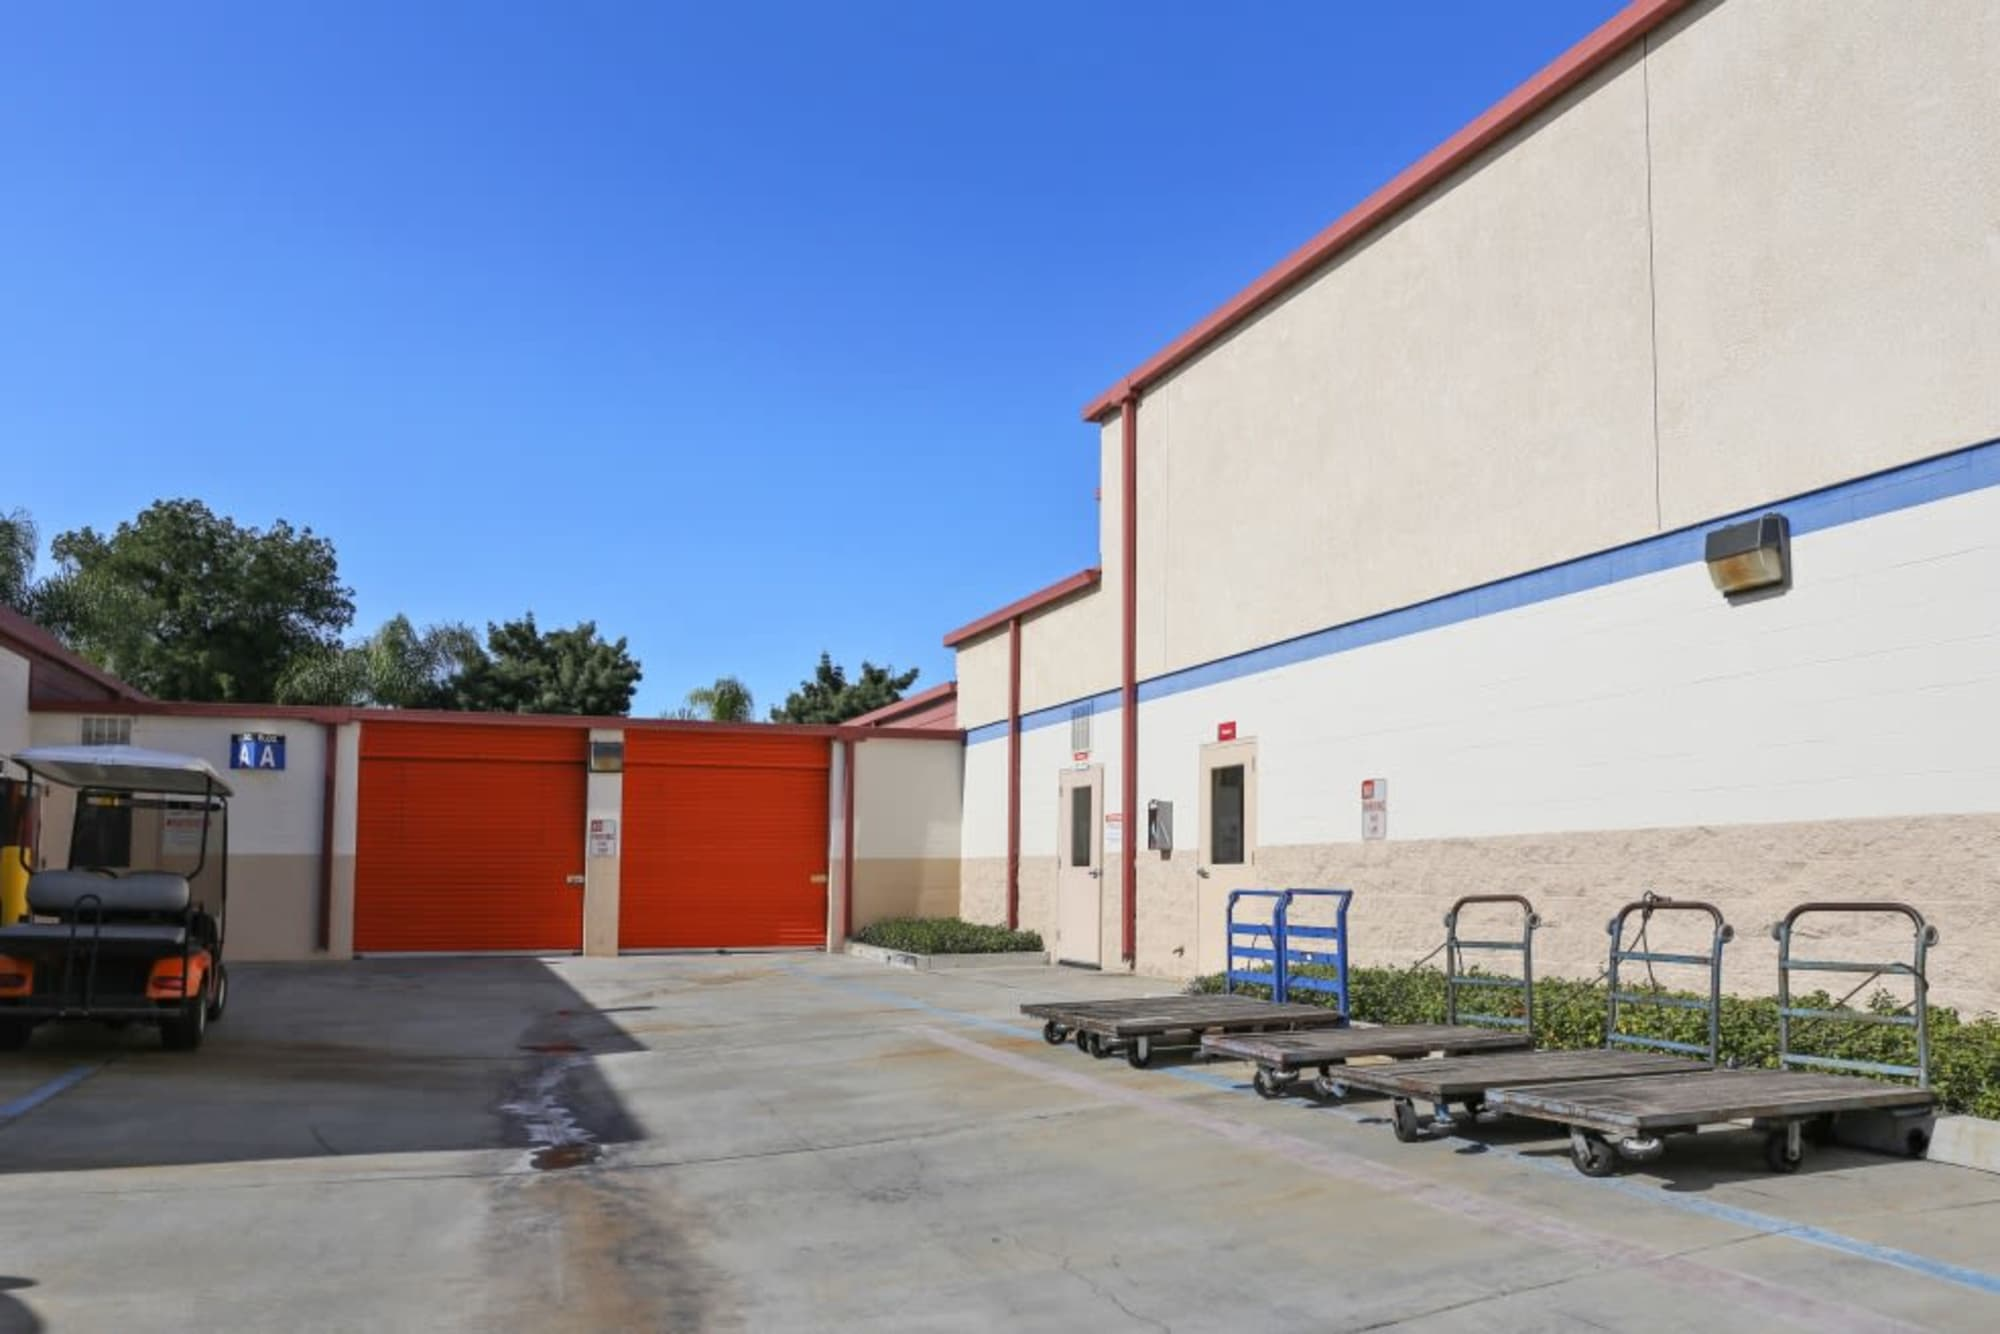 Carts for customers' convenience at A-1 Self Storage in Fullerton, California